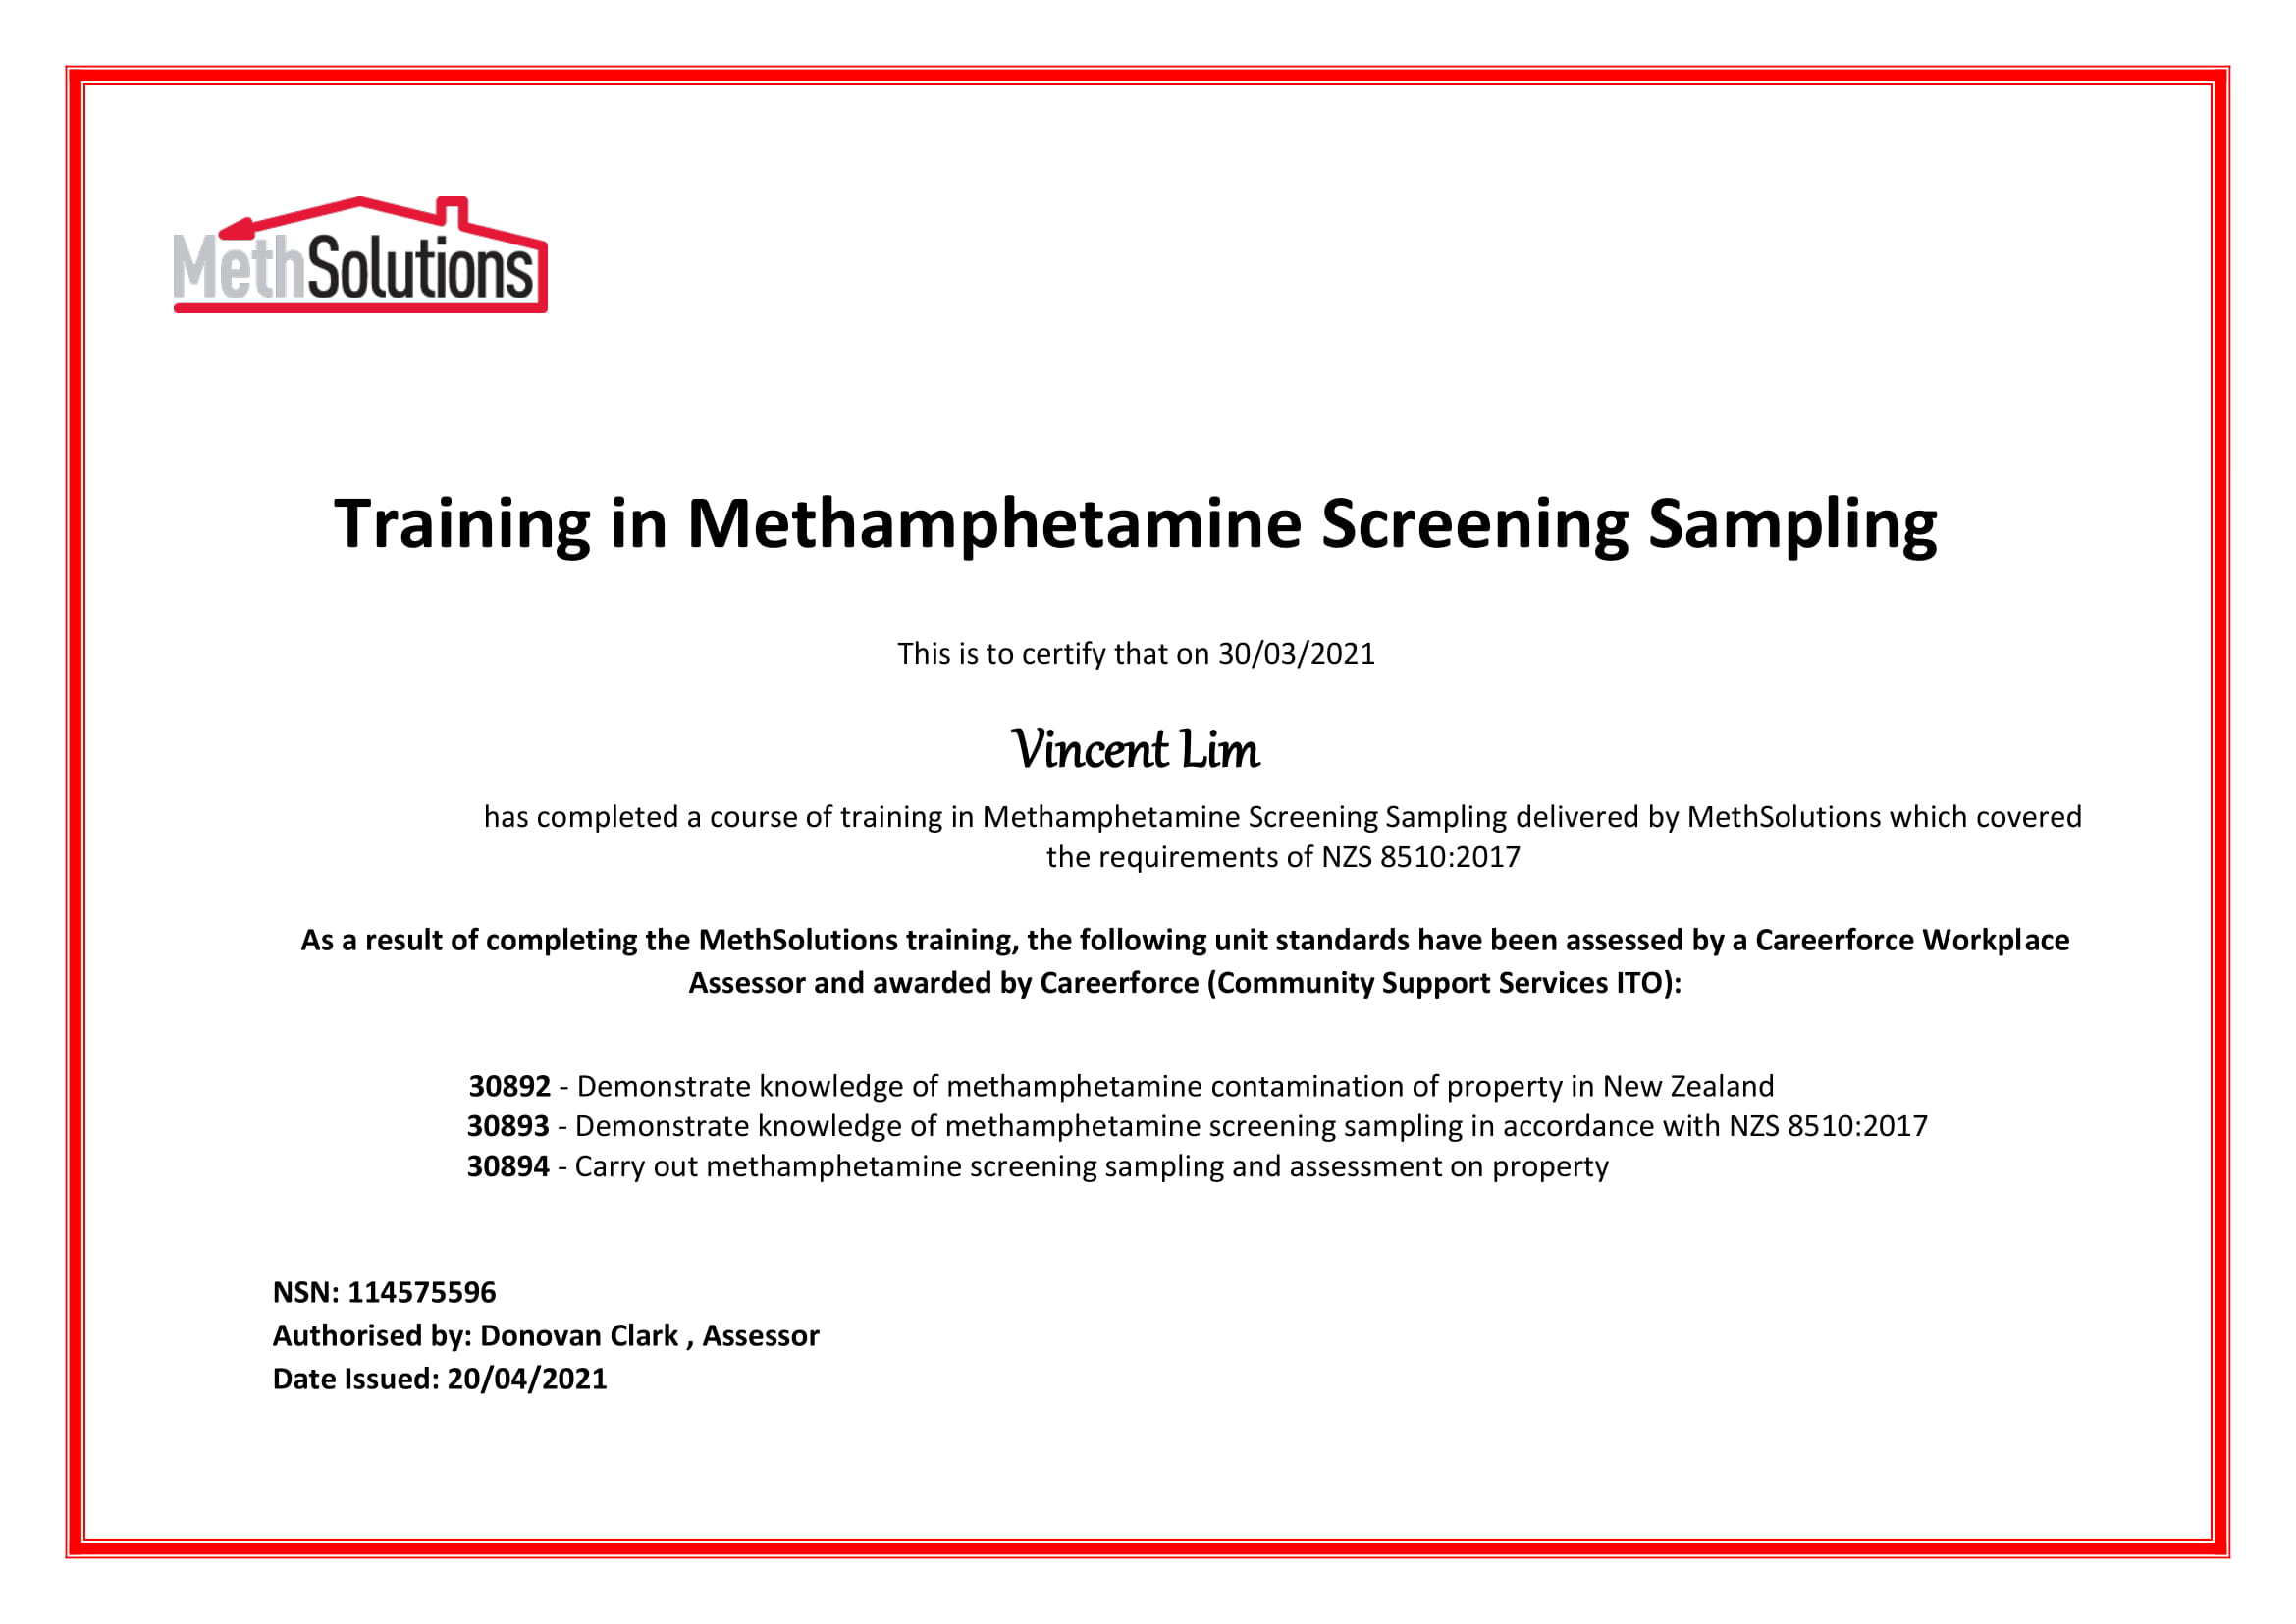 Certification Meth Sampling NZS 8510:2017